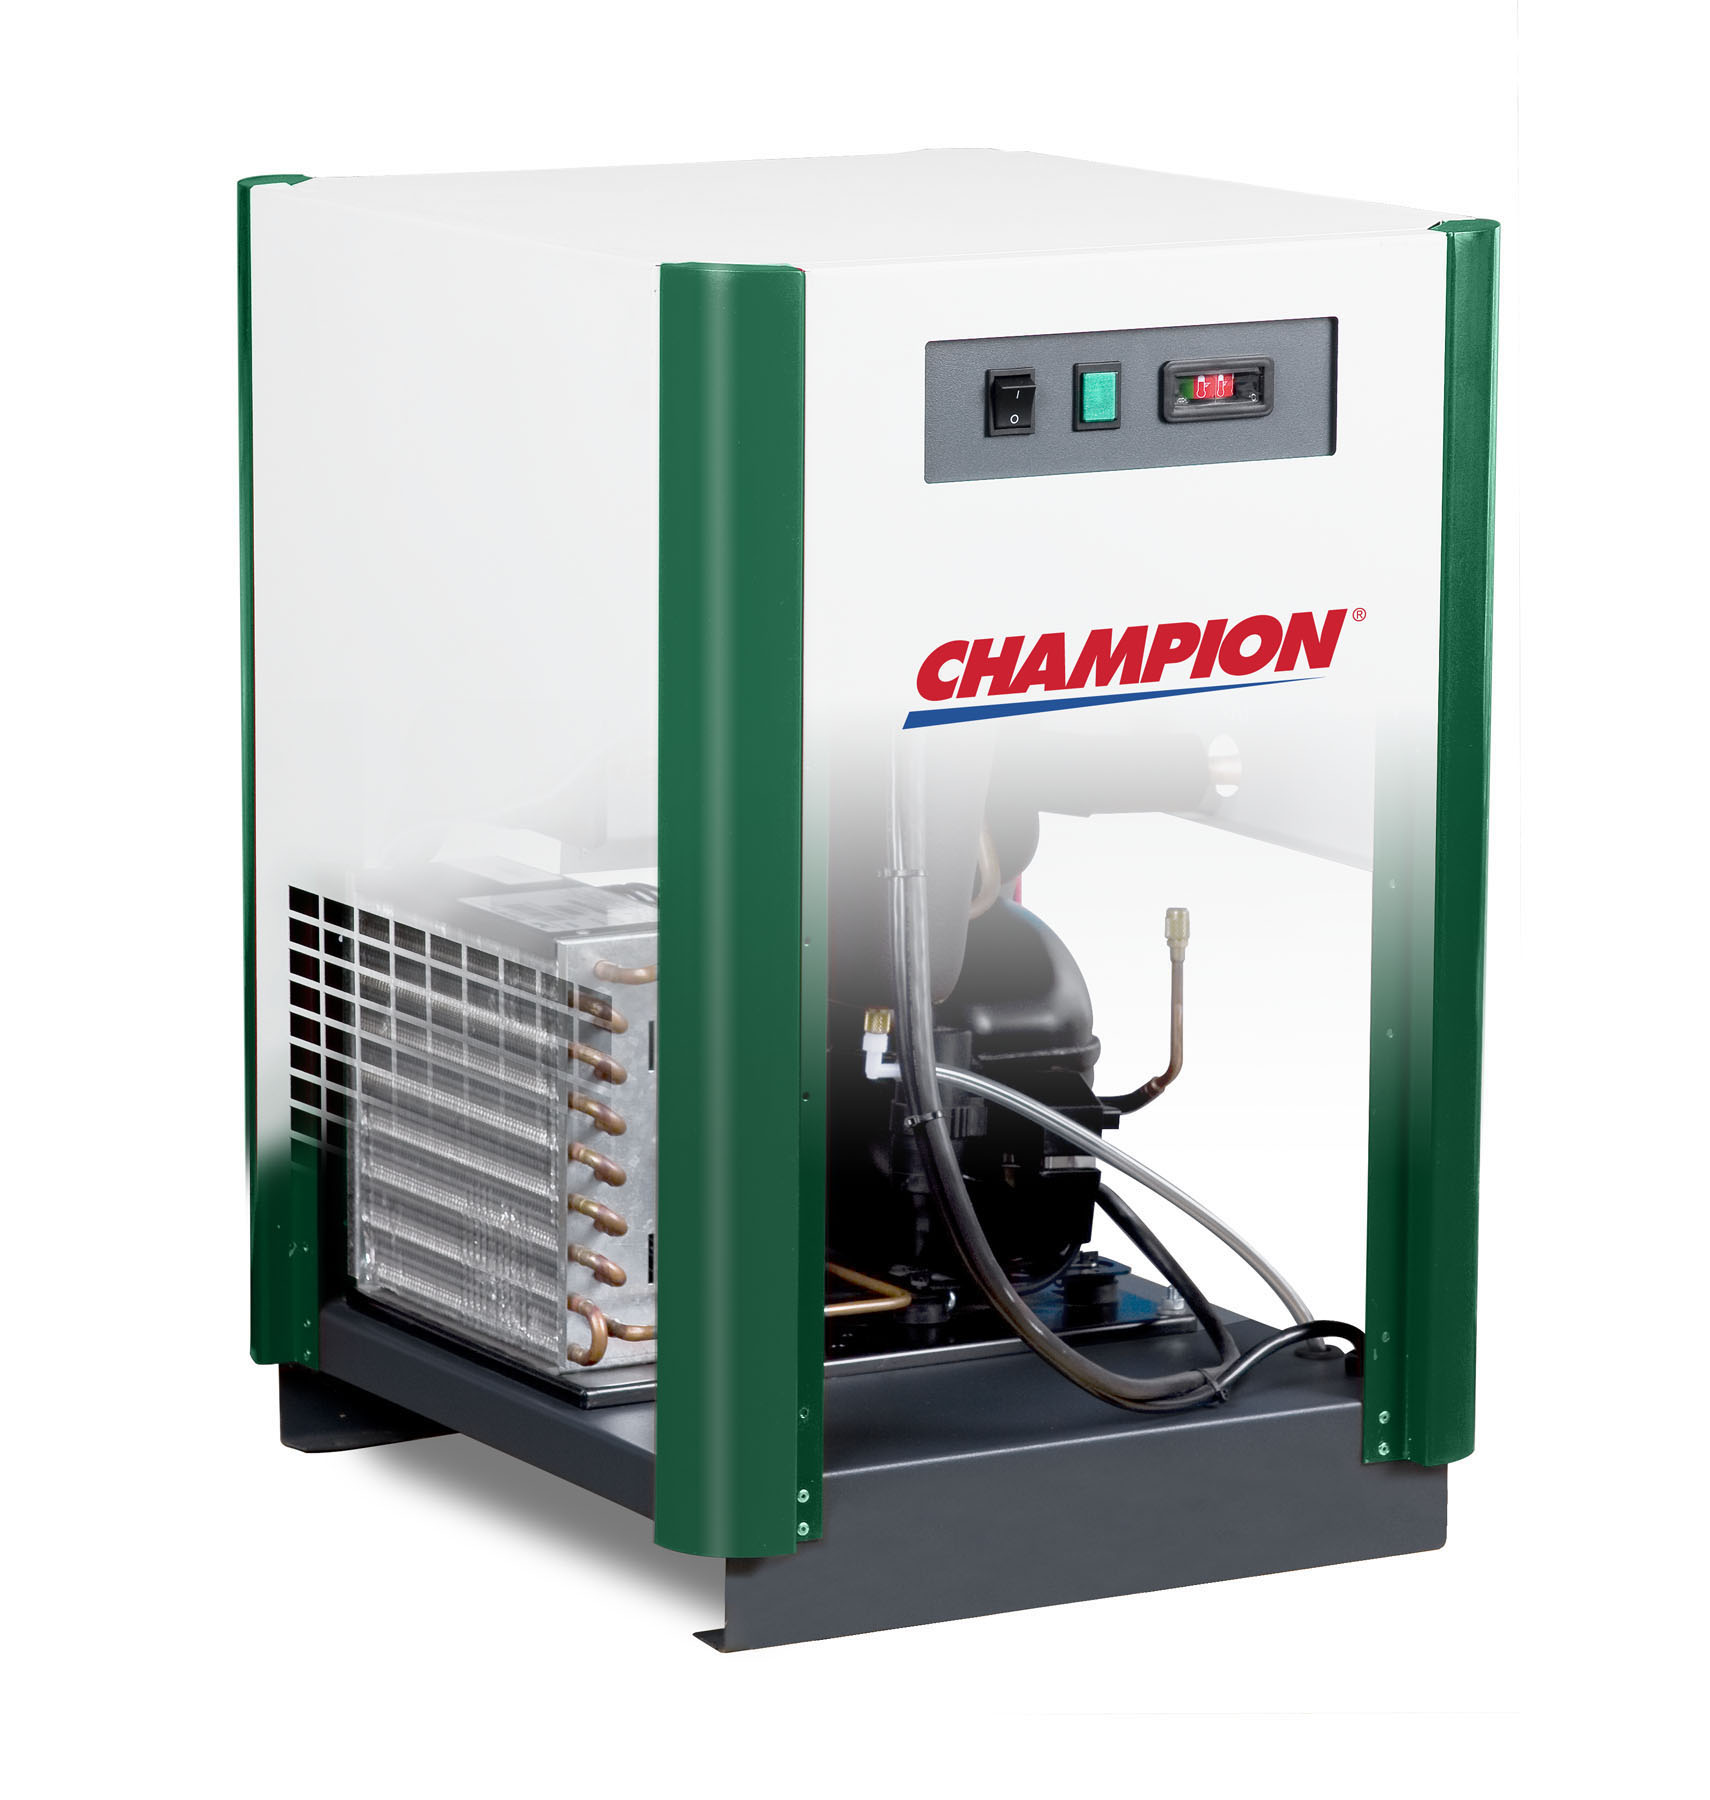 Champion Compressed Air Refrigerated Air Dryer The Best